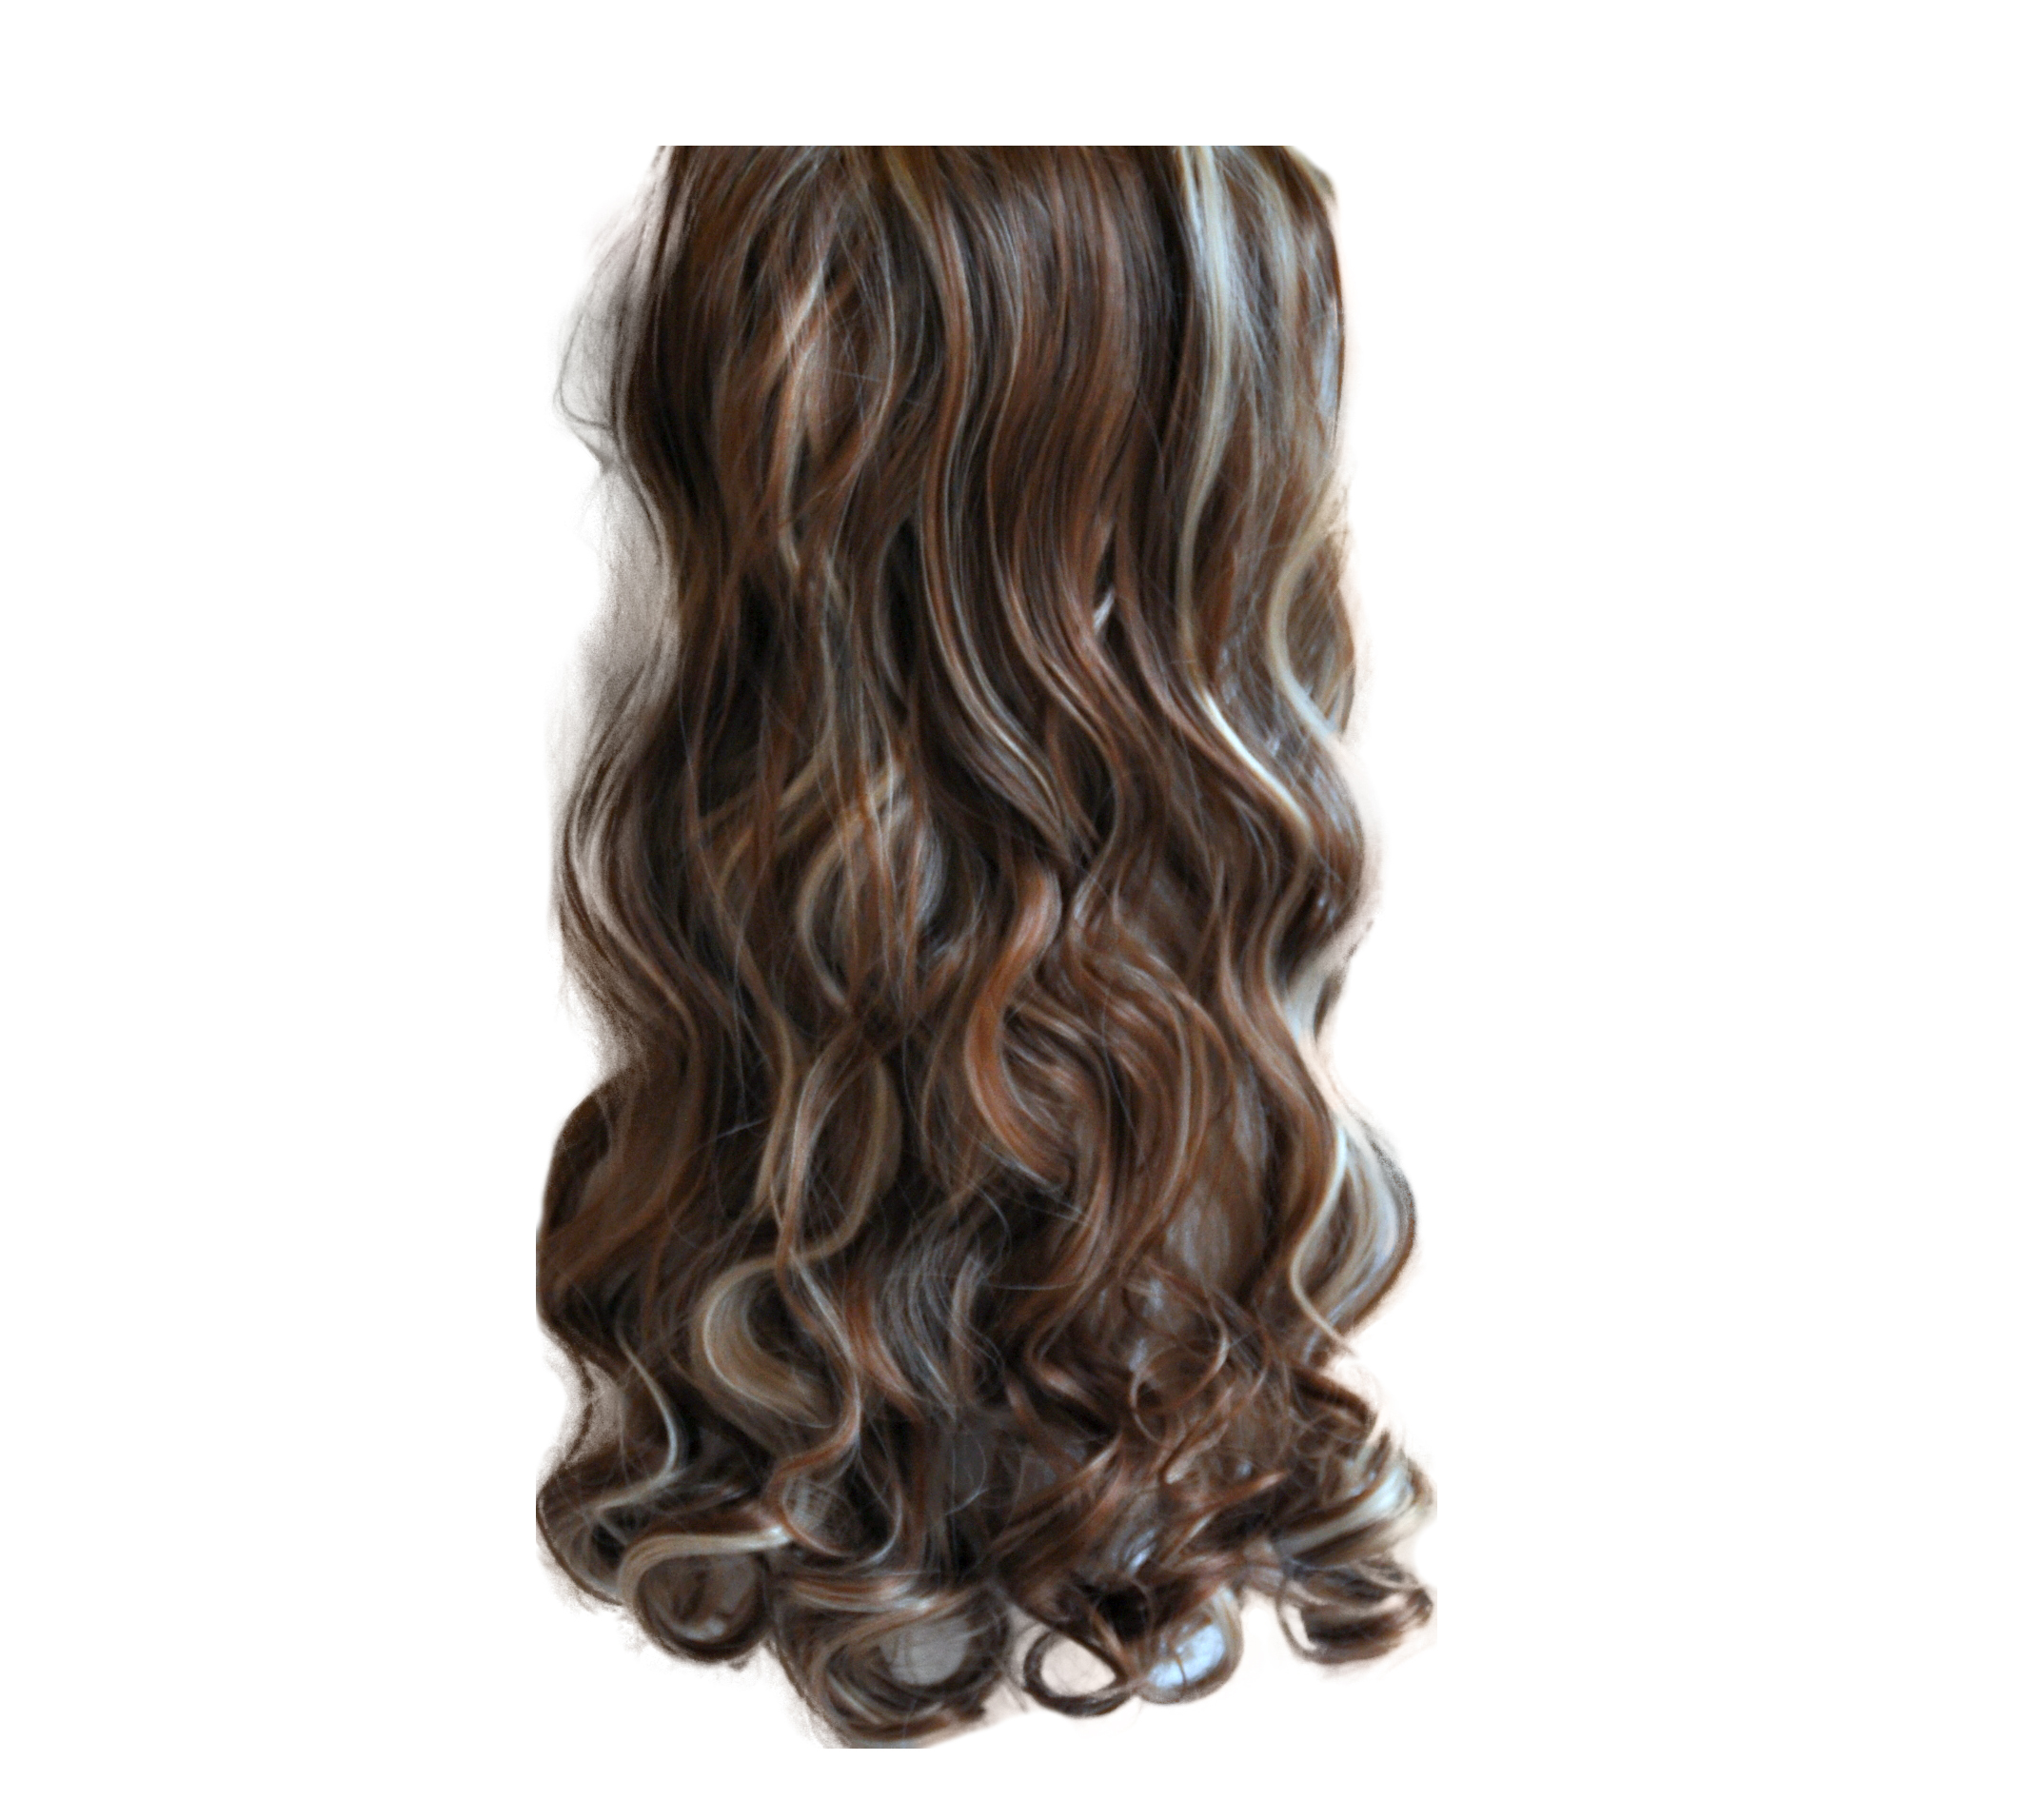 2022 Clip In Hair Extensions Curly Medium Brownblonde Mix 6613